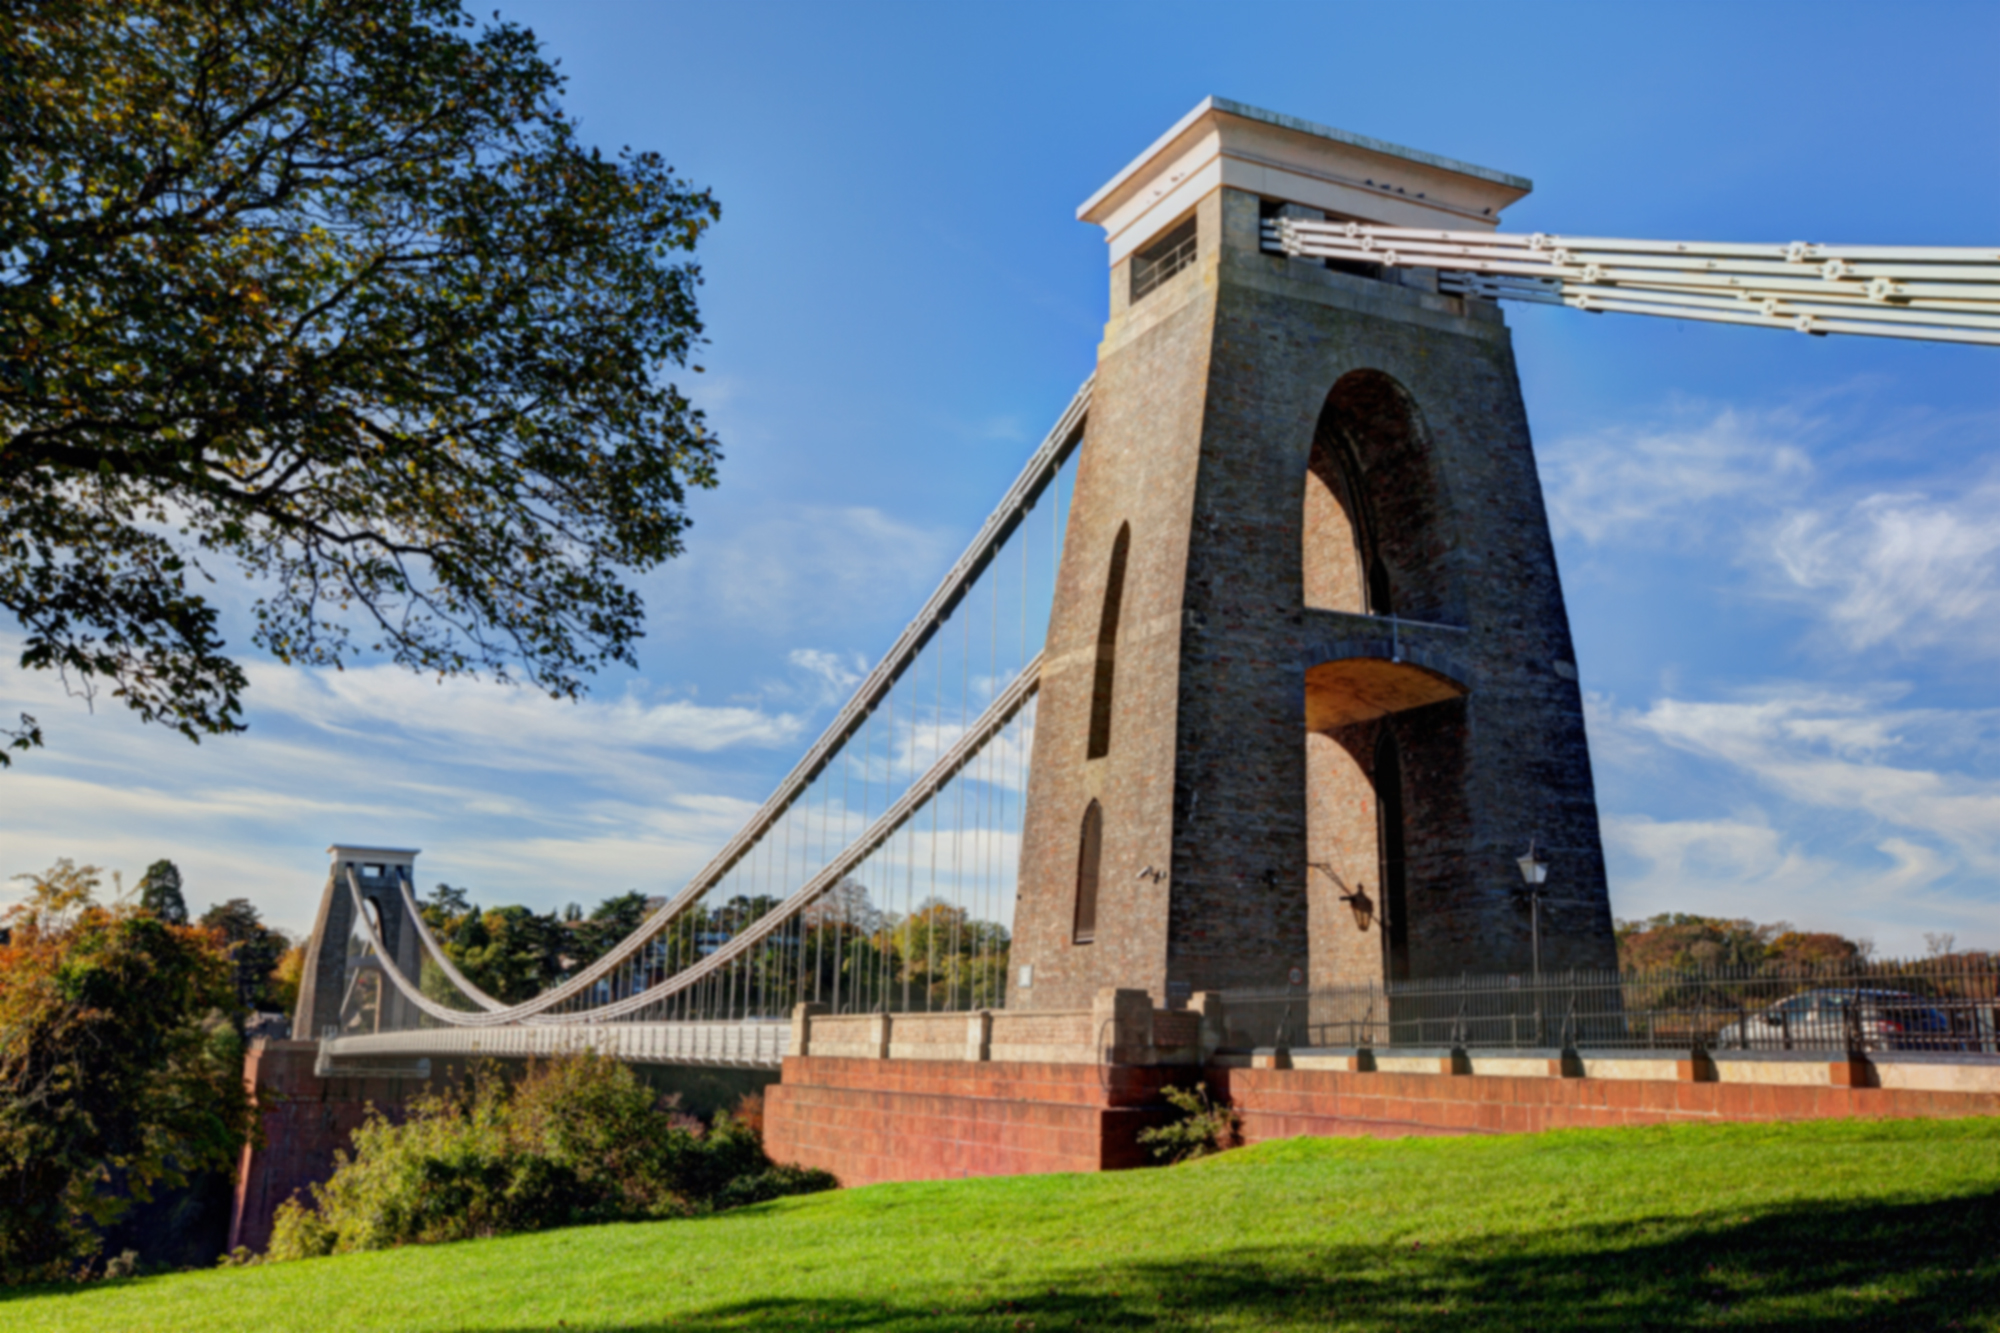 Shot of the Clifton Suspension Bridge, taken from the Clifton side and looking across the bridge to the other side. It's a bright sunny day with blue sky and a few clouds